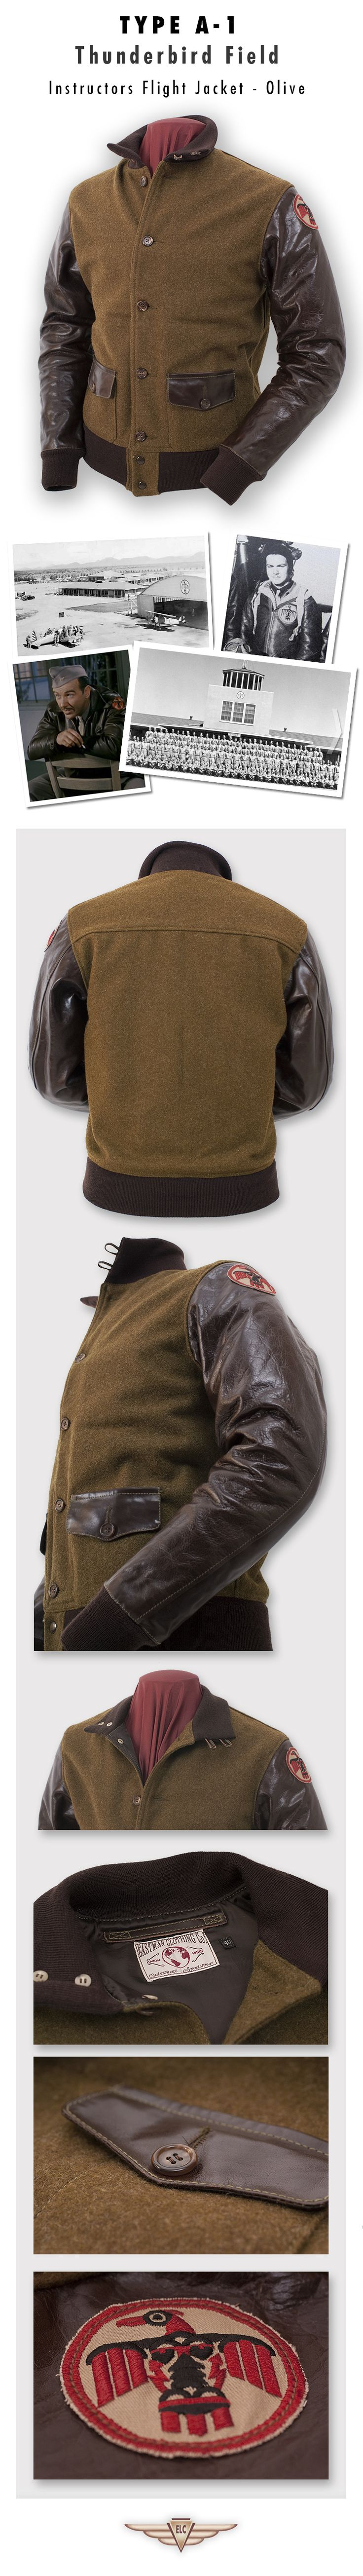 Eastman Leather Clothing - Civilian Design Classics : Tb A-1 Olv